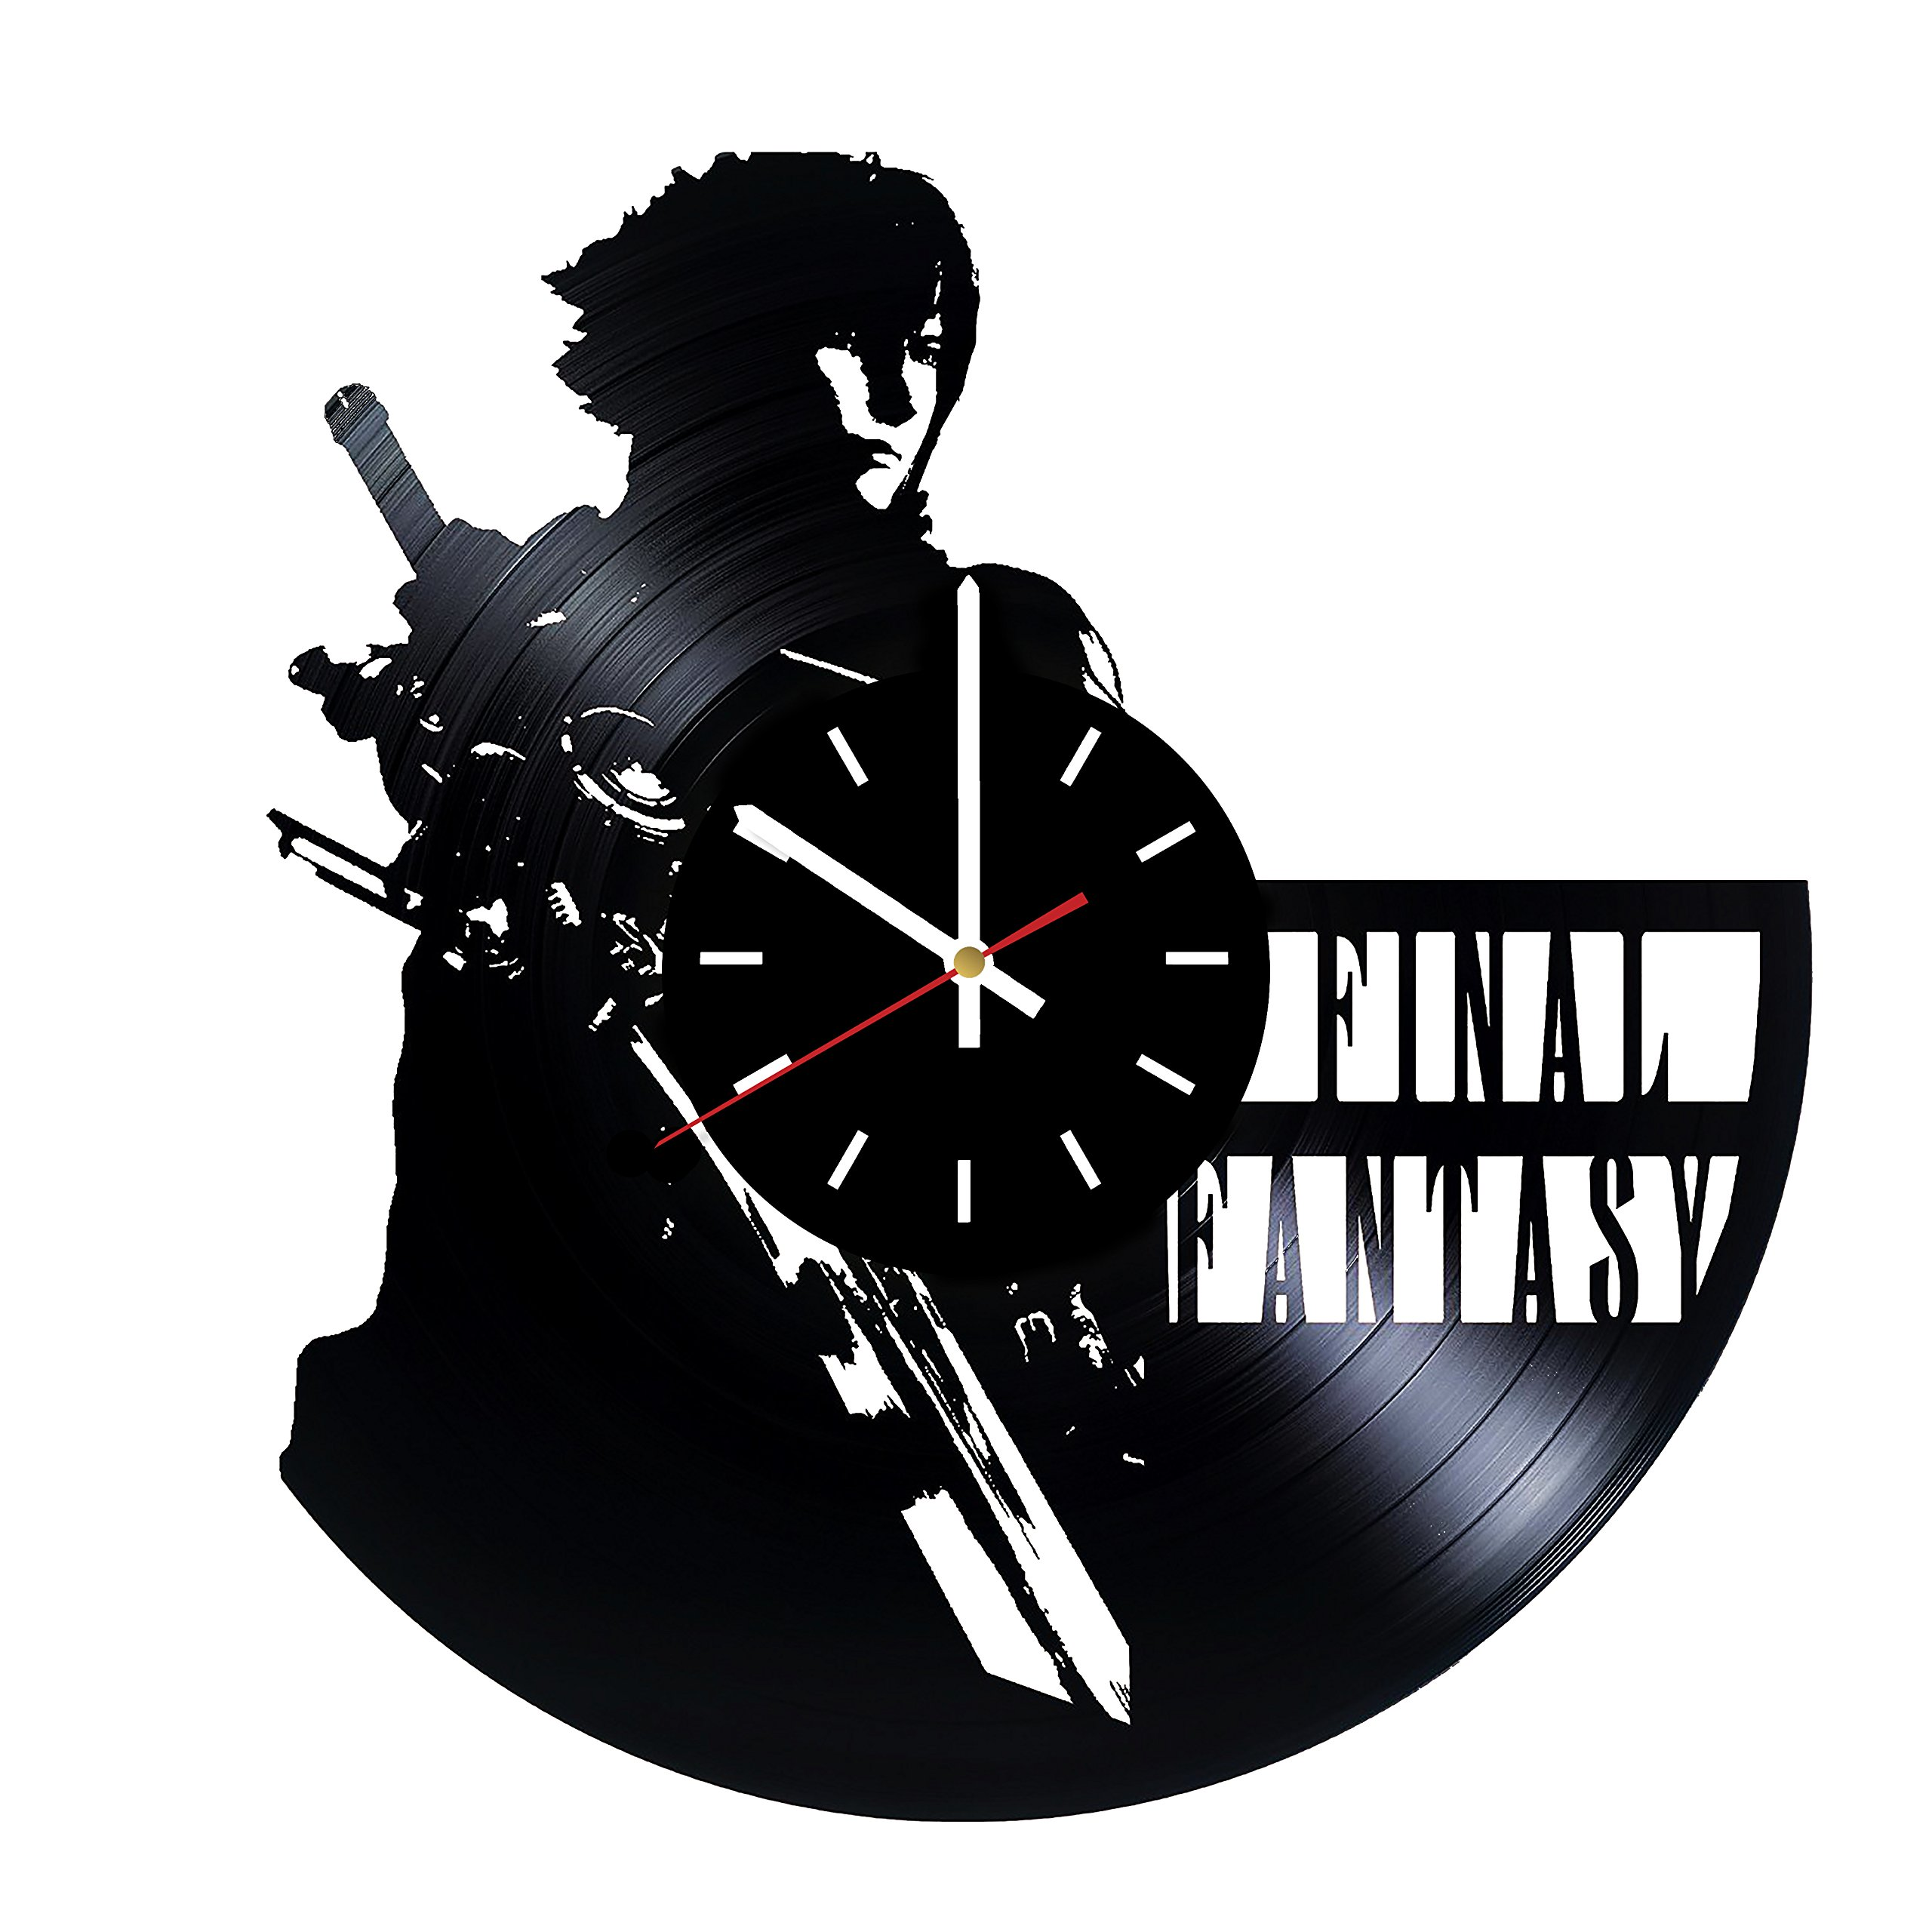 Everyday Arts Final Fantasy Video Game Design Vinyl Record Wall Clock - Get Unique Bedroom or Garage Wall Decor - Gift Ideas for Friends, Brother - Darth Vader Unique Modern Art by Everyday Arts